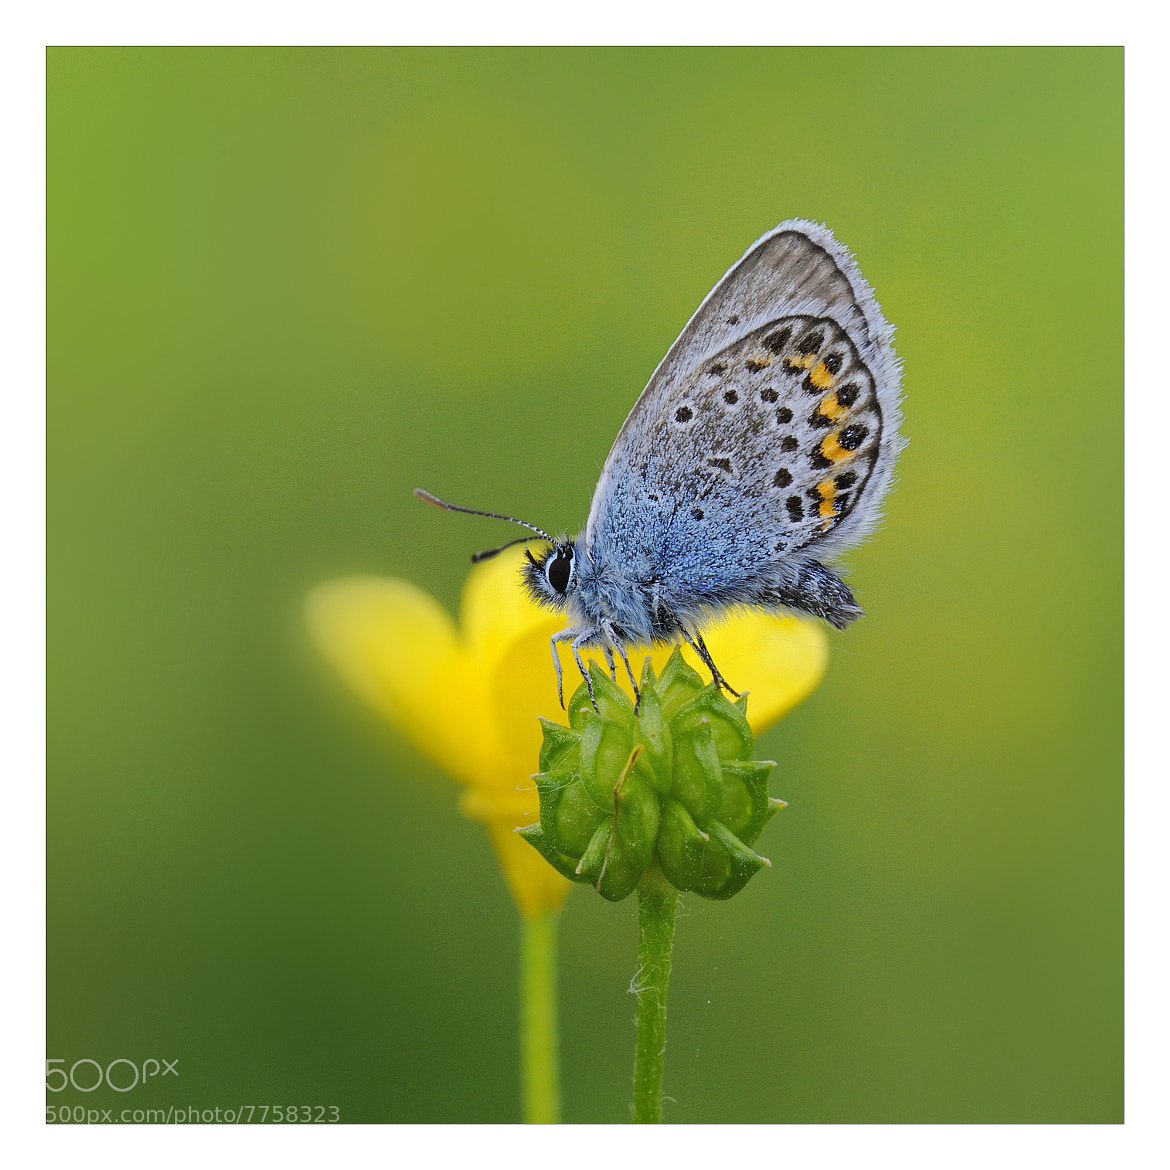 Photograph licenide by mauro maione on 500px